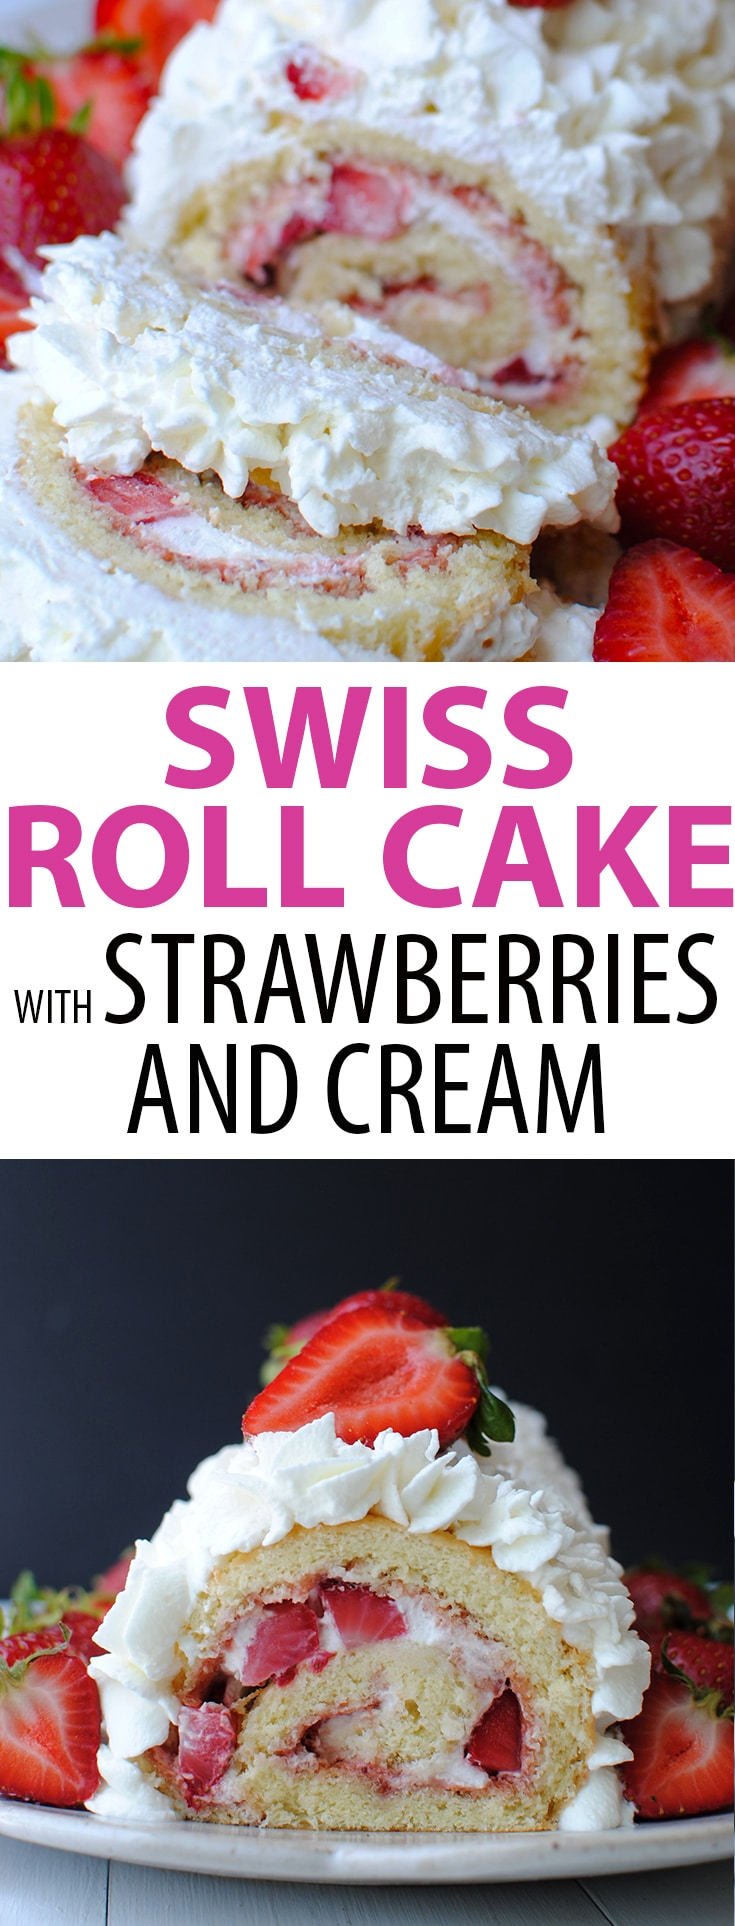 Swiss Roll Cake with Strawberries and Cream